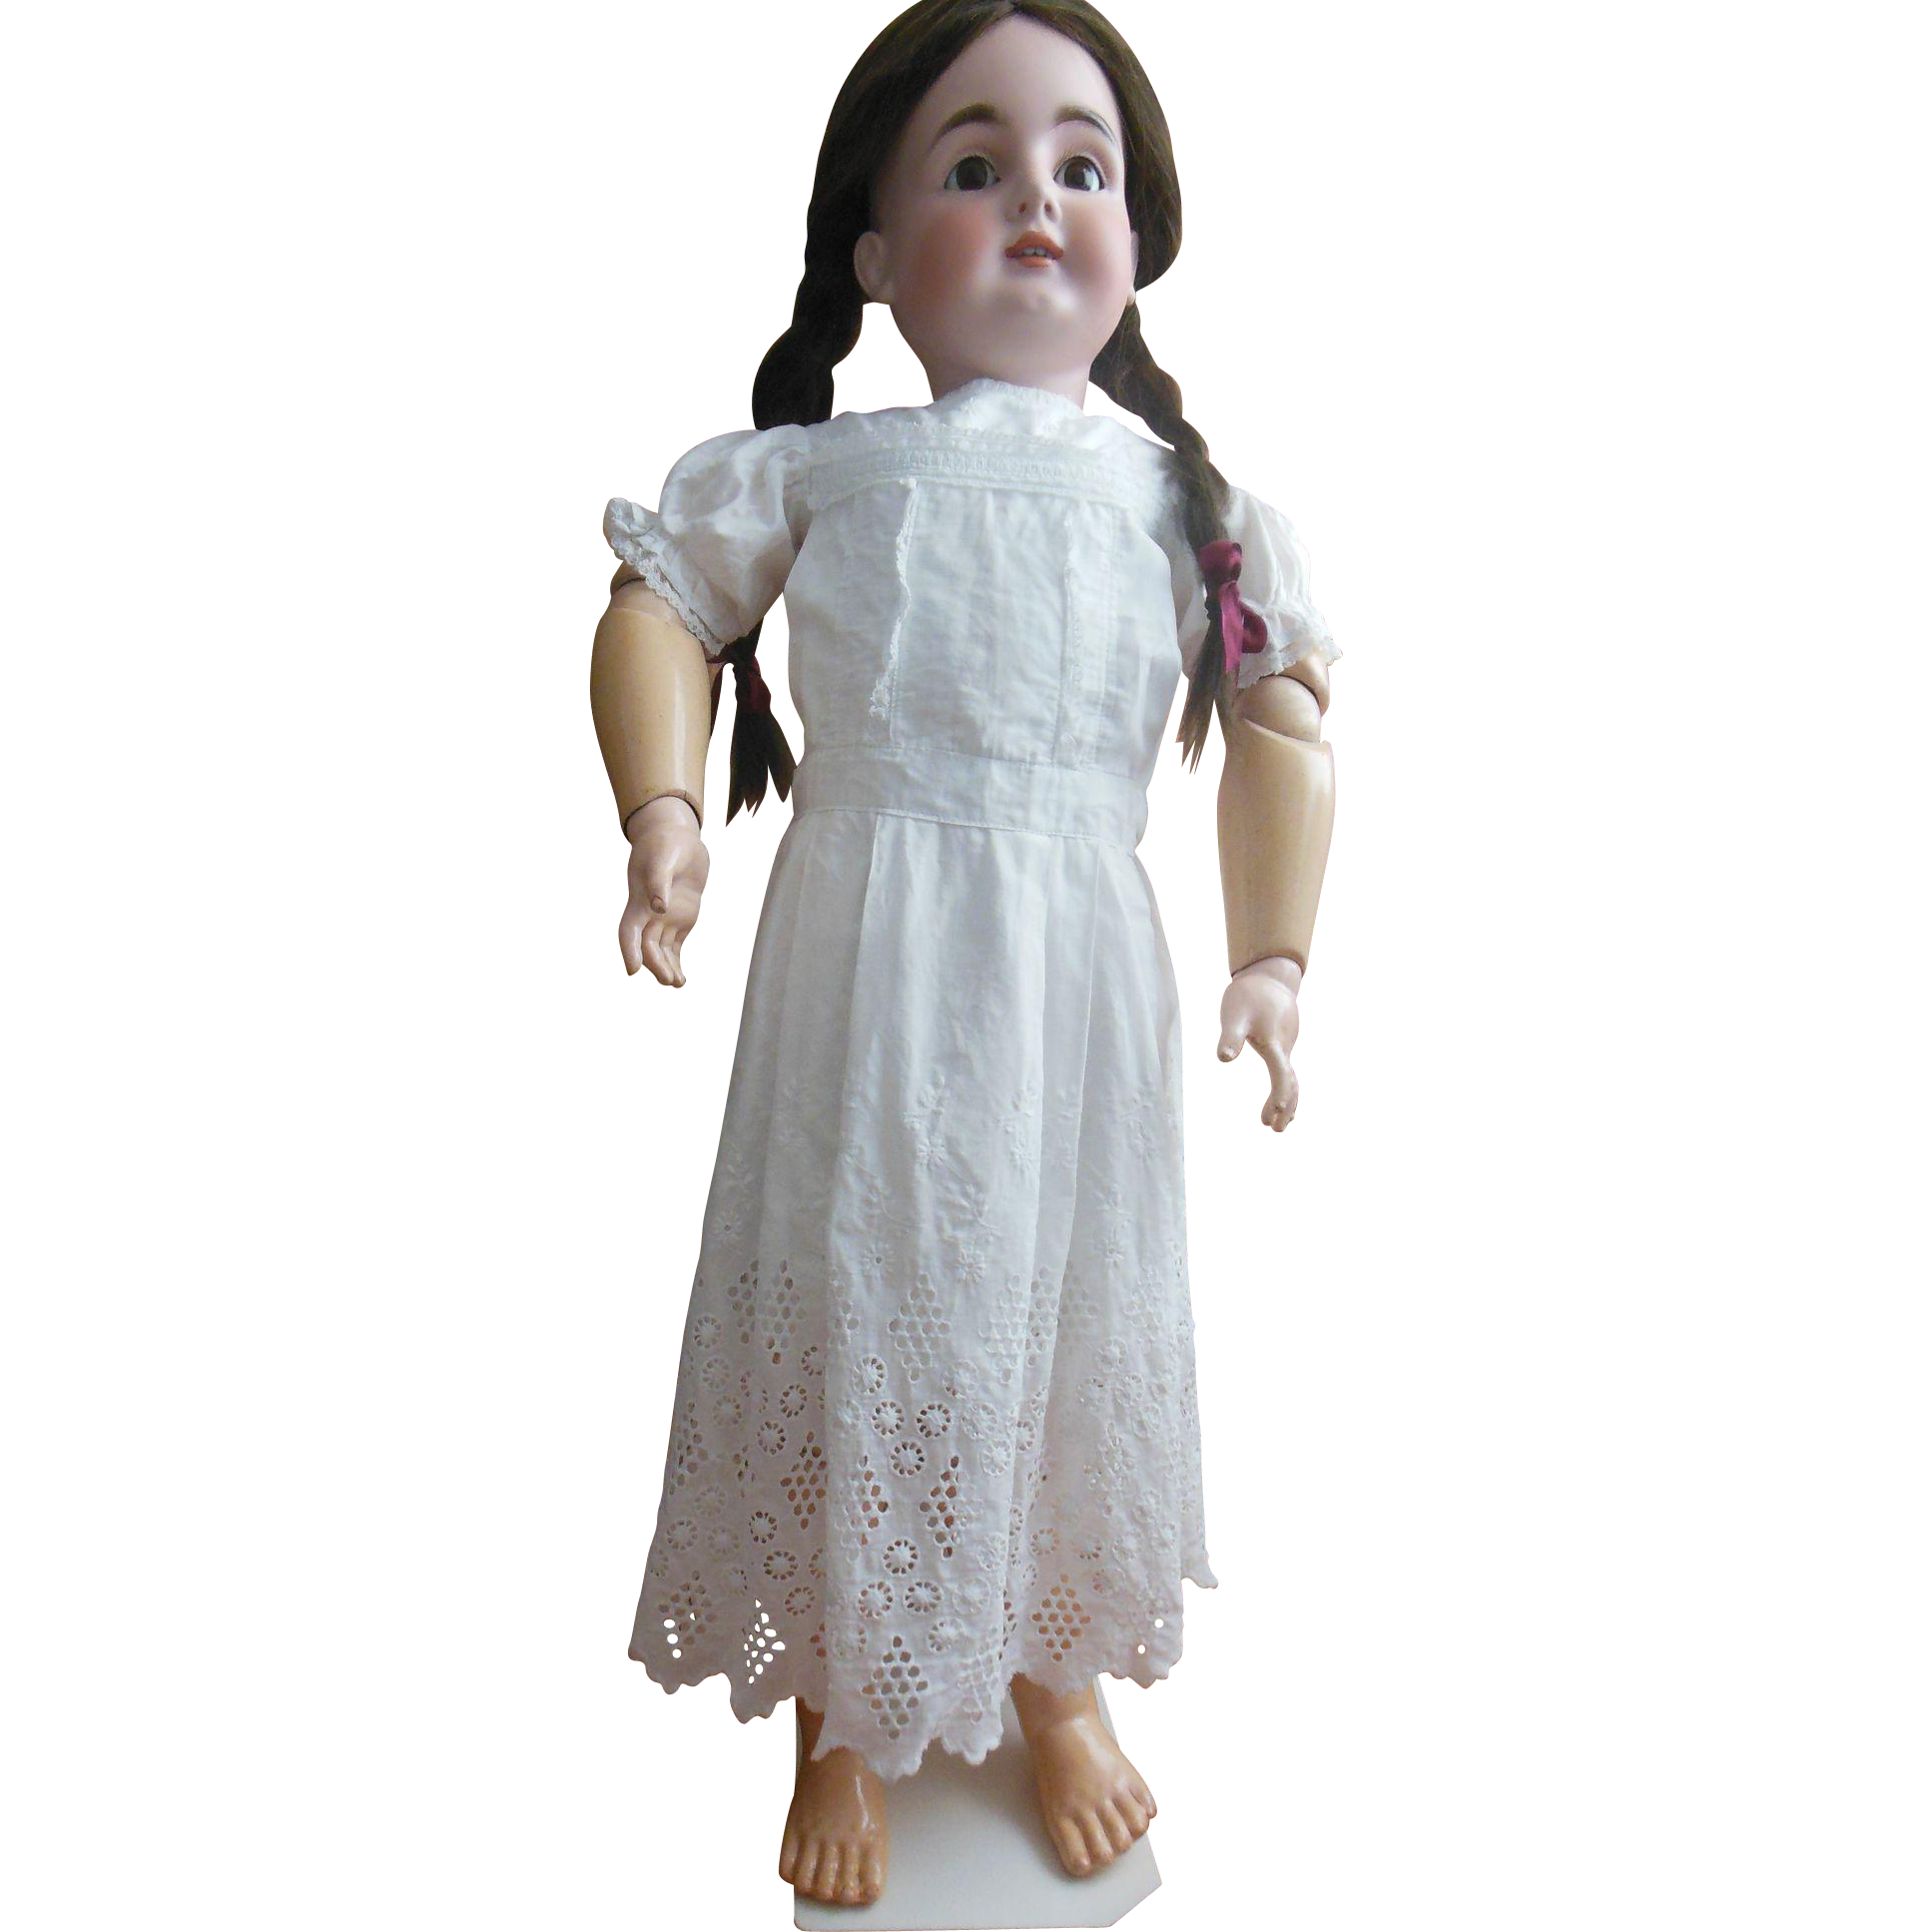 Whitework dress for large doll